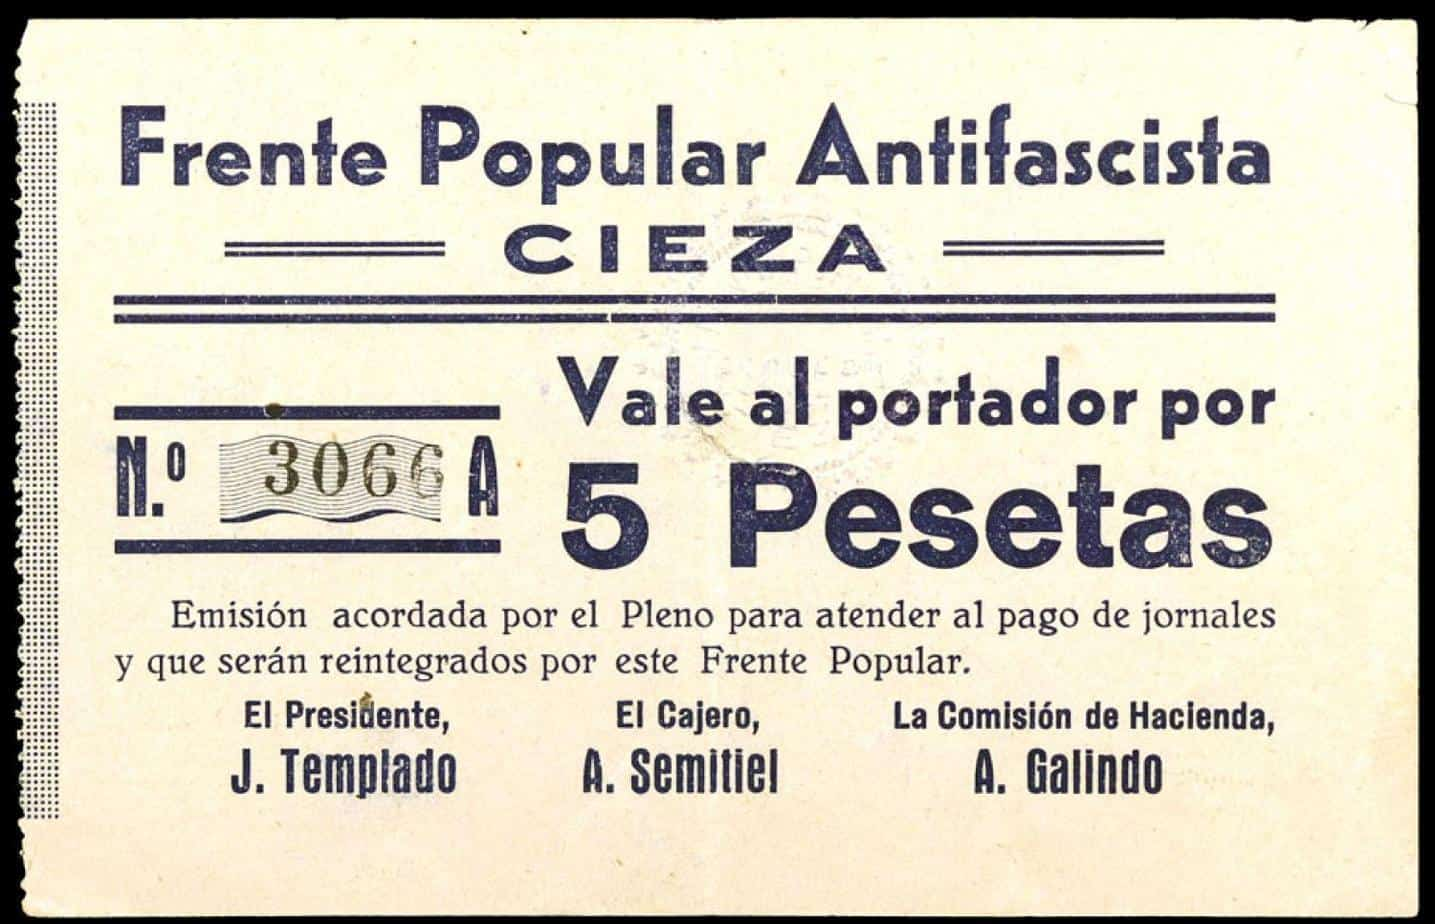 Vale de 5 pesetas. Frente Popular Antifascista. Cieza